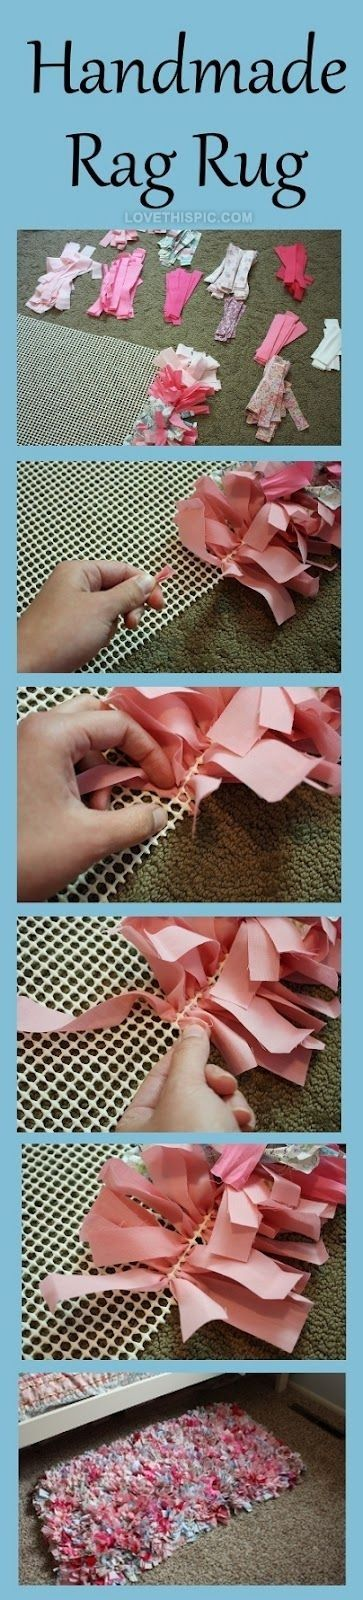 DIY Handmade Rag Rug Pictures, Photos, and Images for Facebook, Tumblr, Pinterest, and Twitter